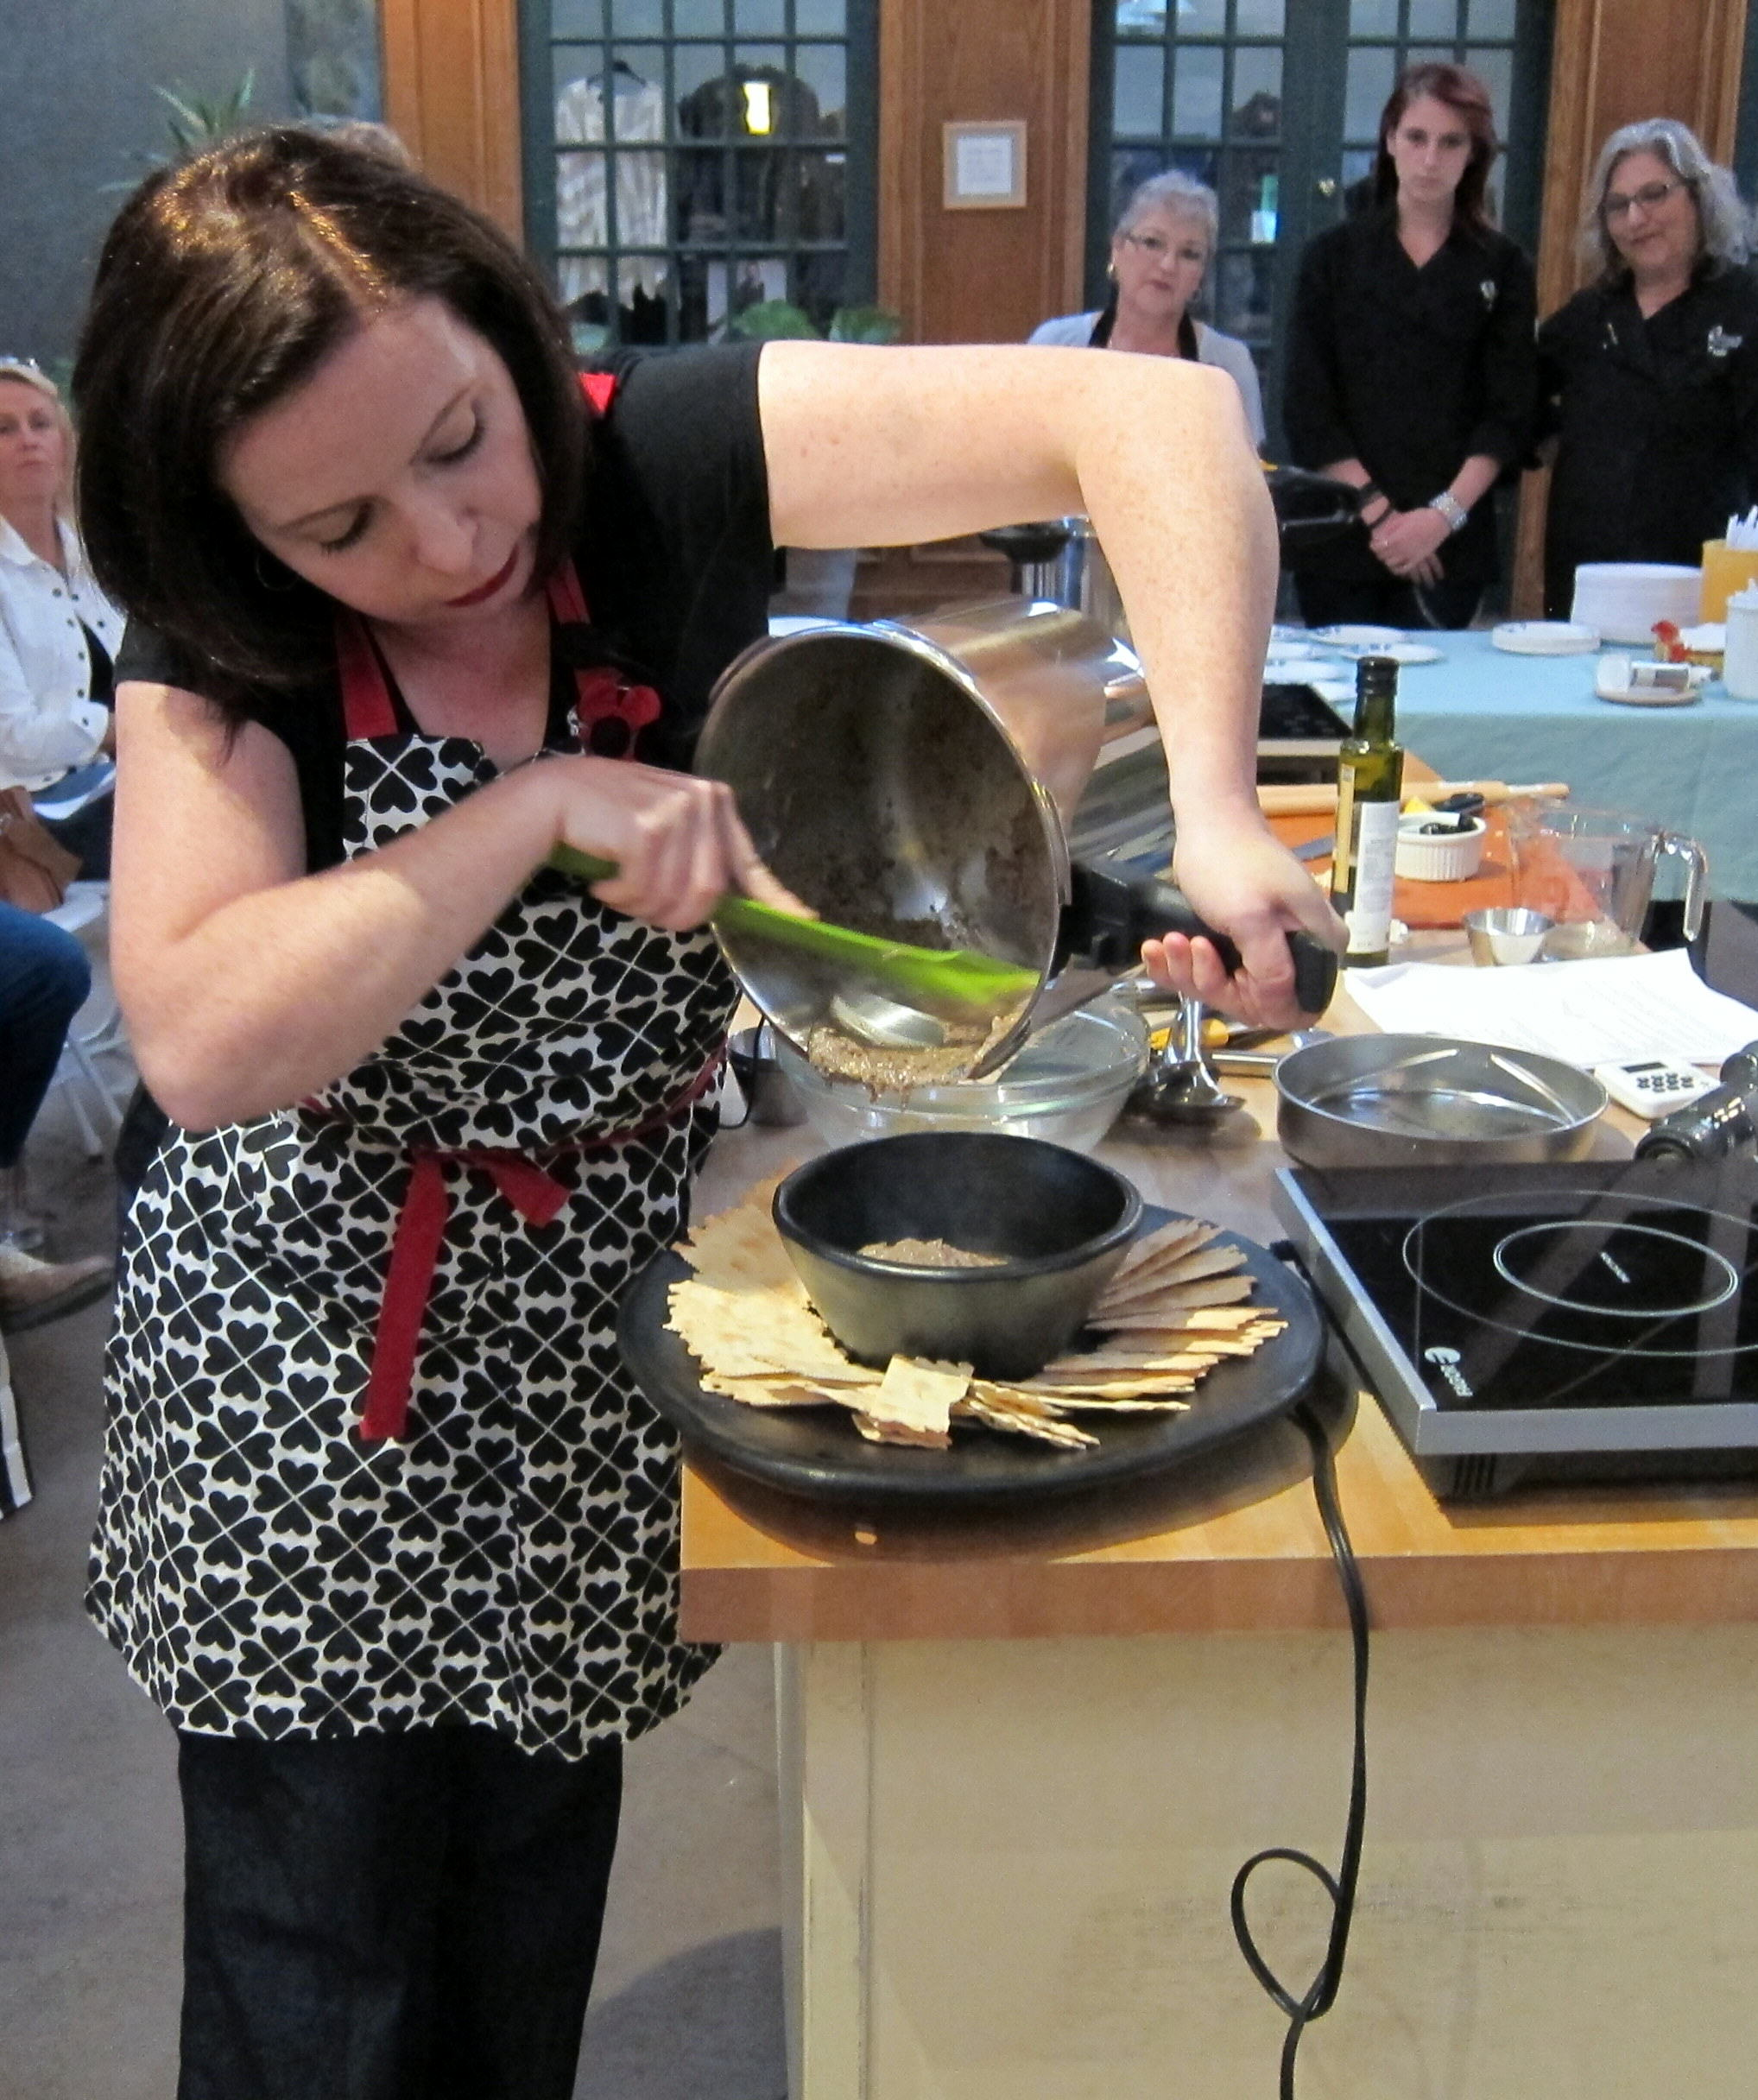 Laura shows her technique for holding a heavy pressure cooker tilted while pouring out the contents